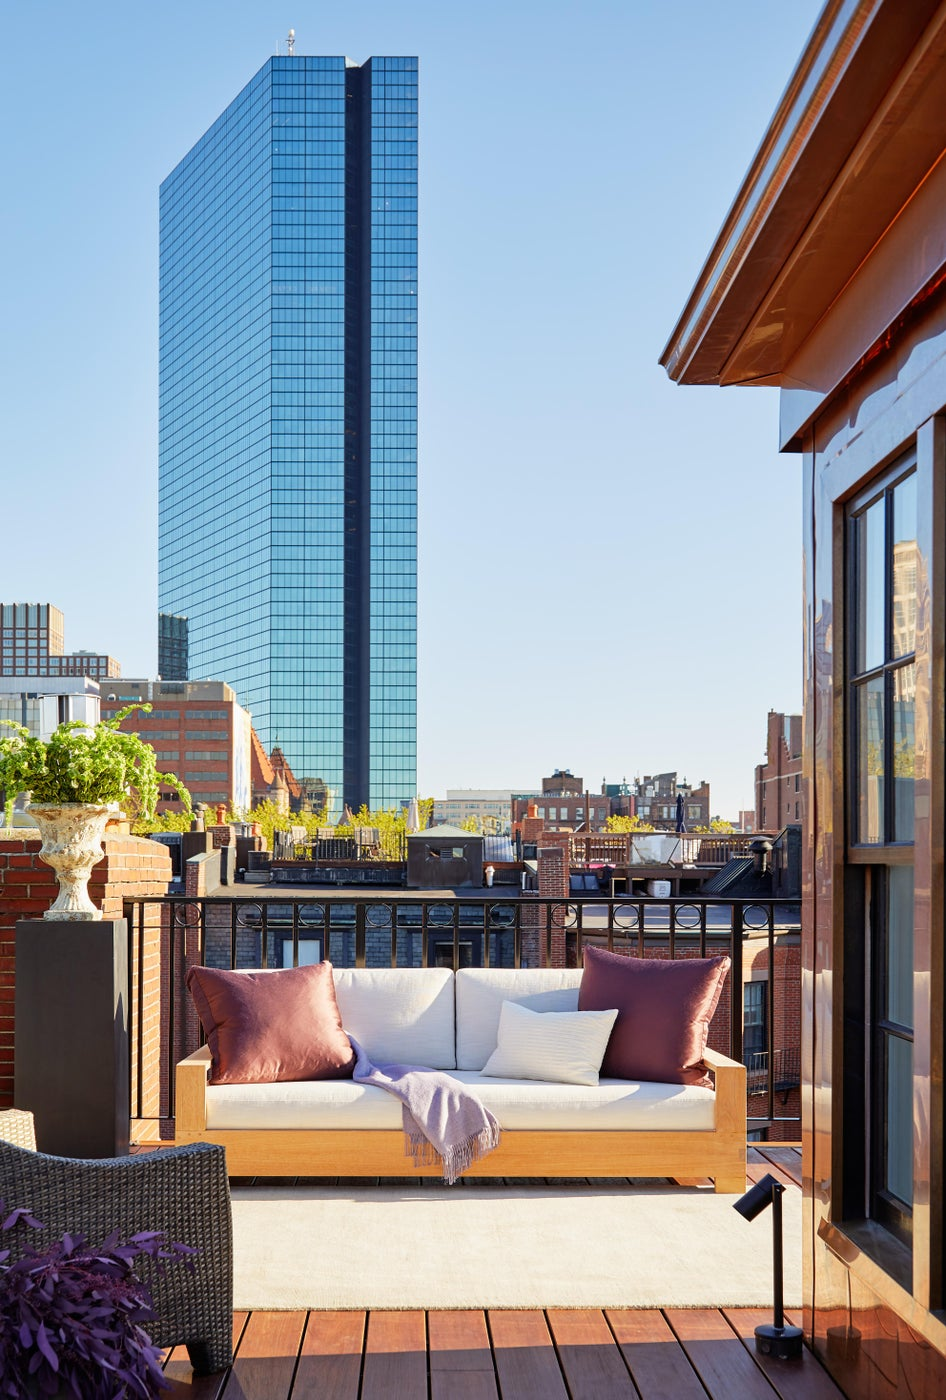 A Historic Boston Back Bay Brownstone Roof Deck with Copper Head-house Feature